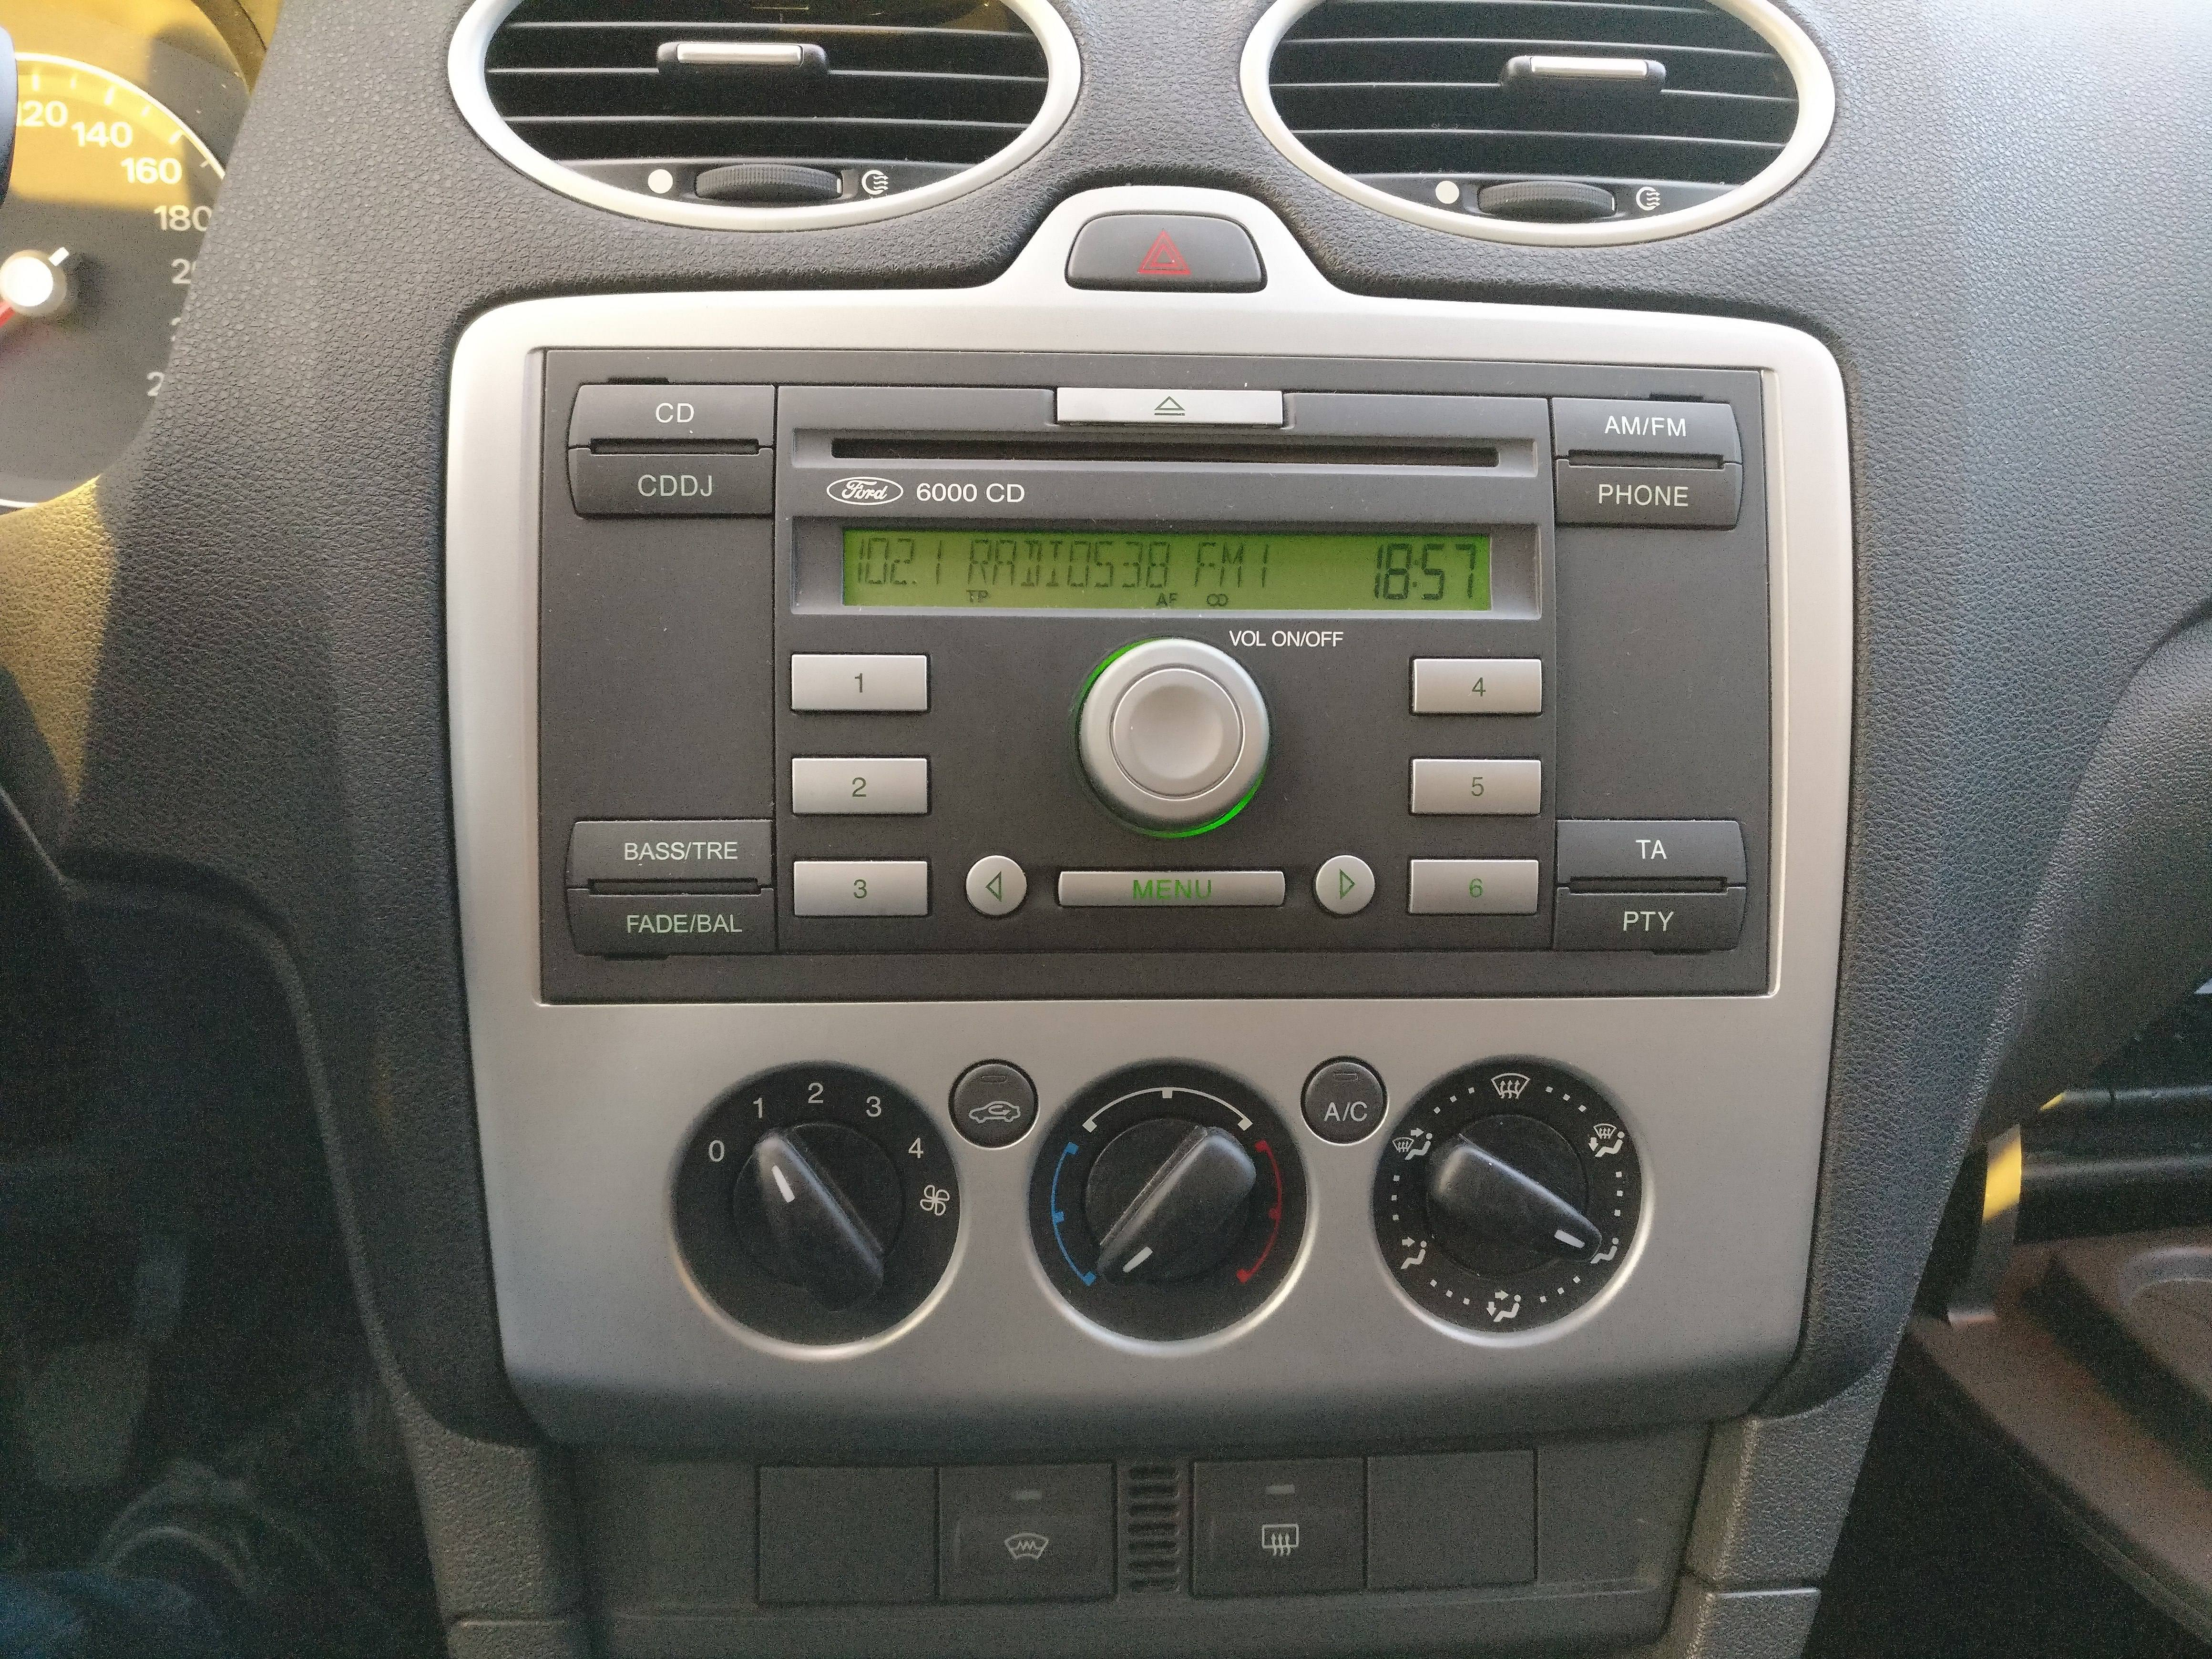 ford radio wisselen 6000cd verkeer vervoer got. Black Bedroom Furniture Sets. Home Design Ideas